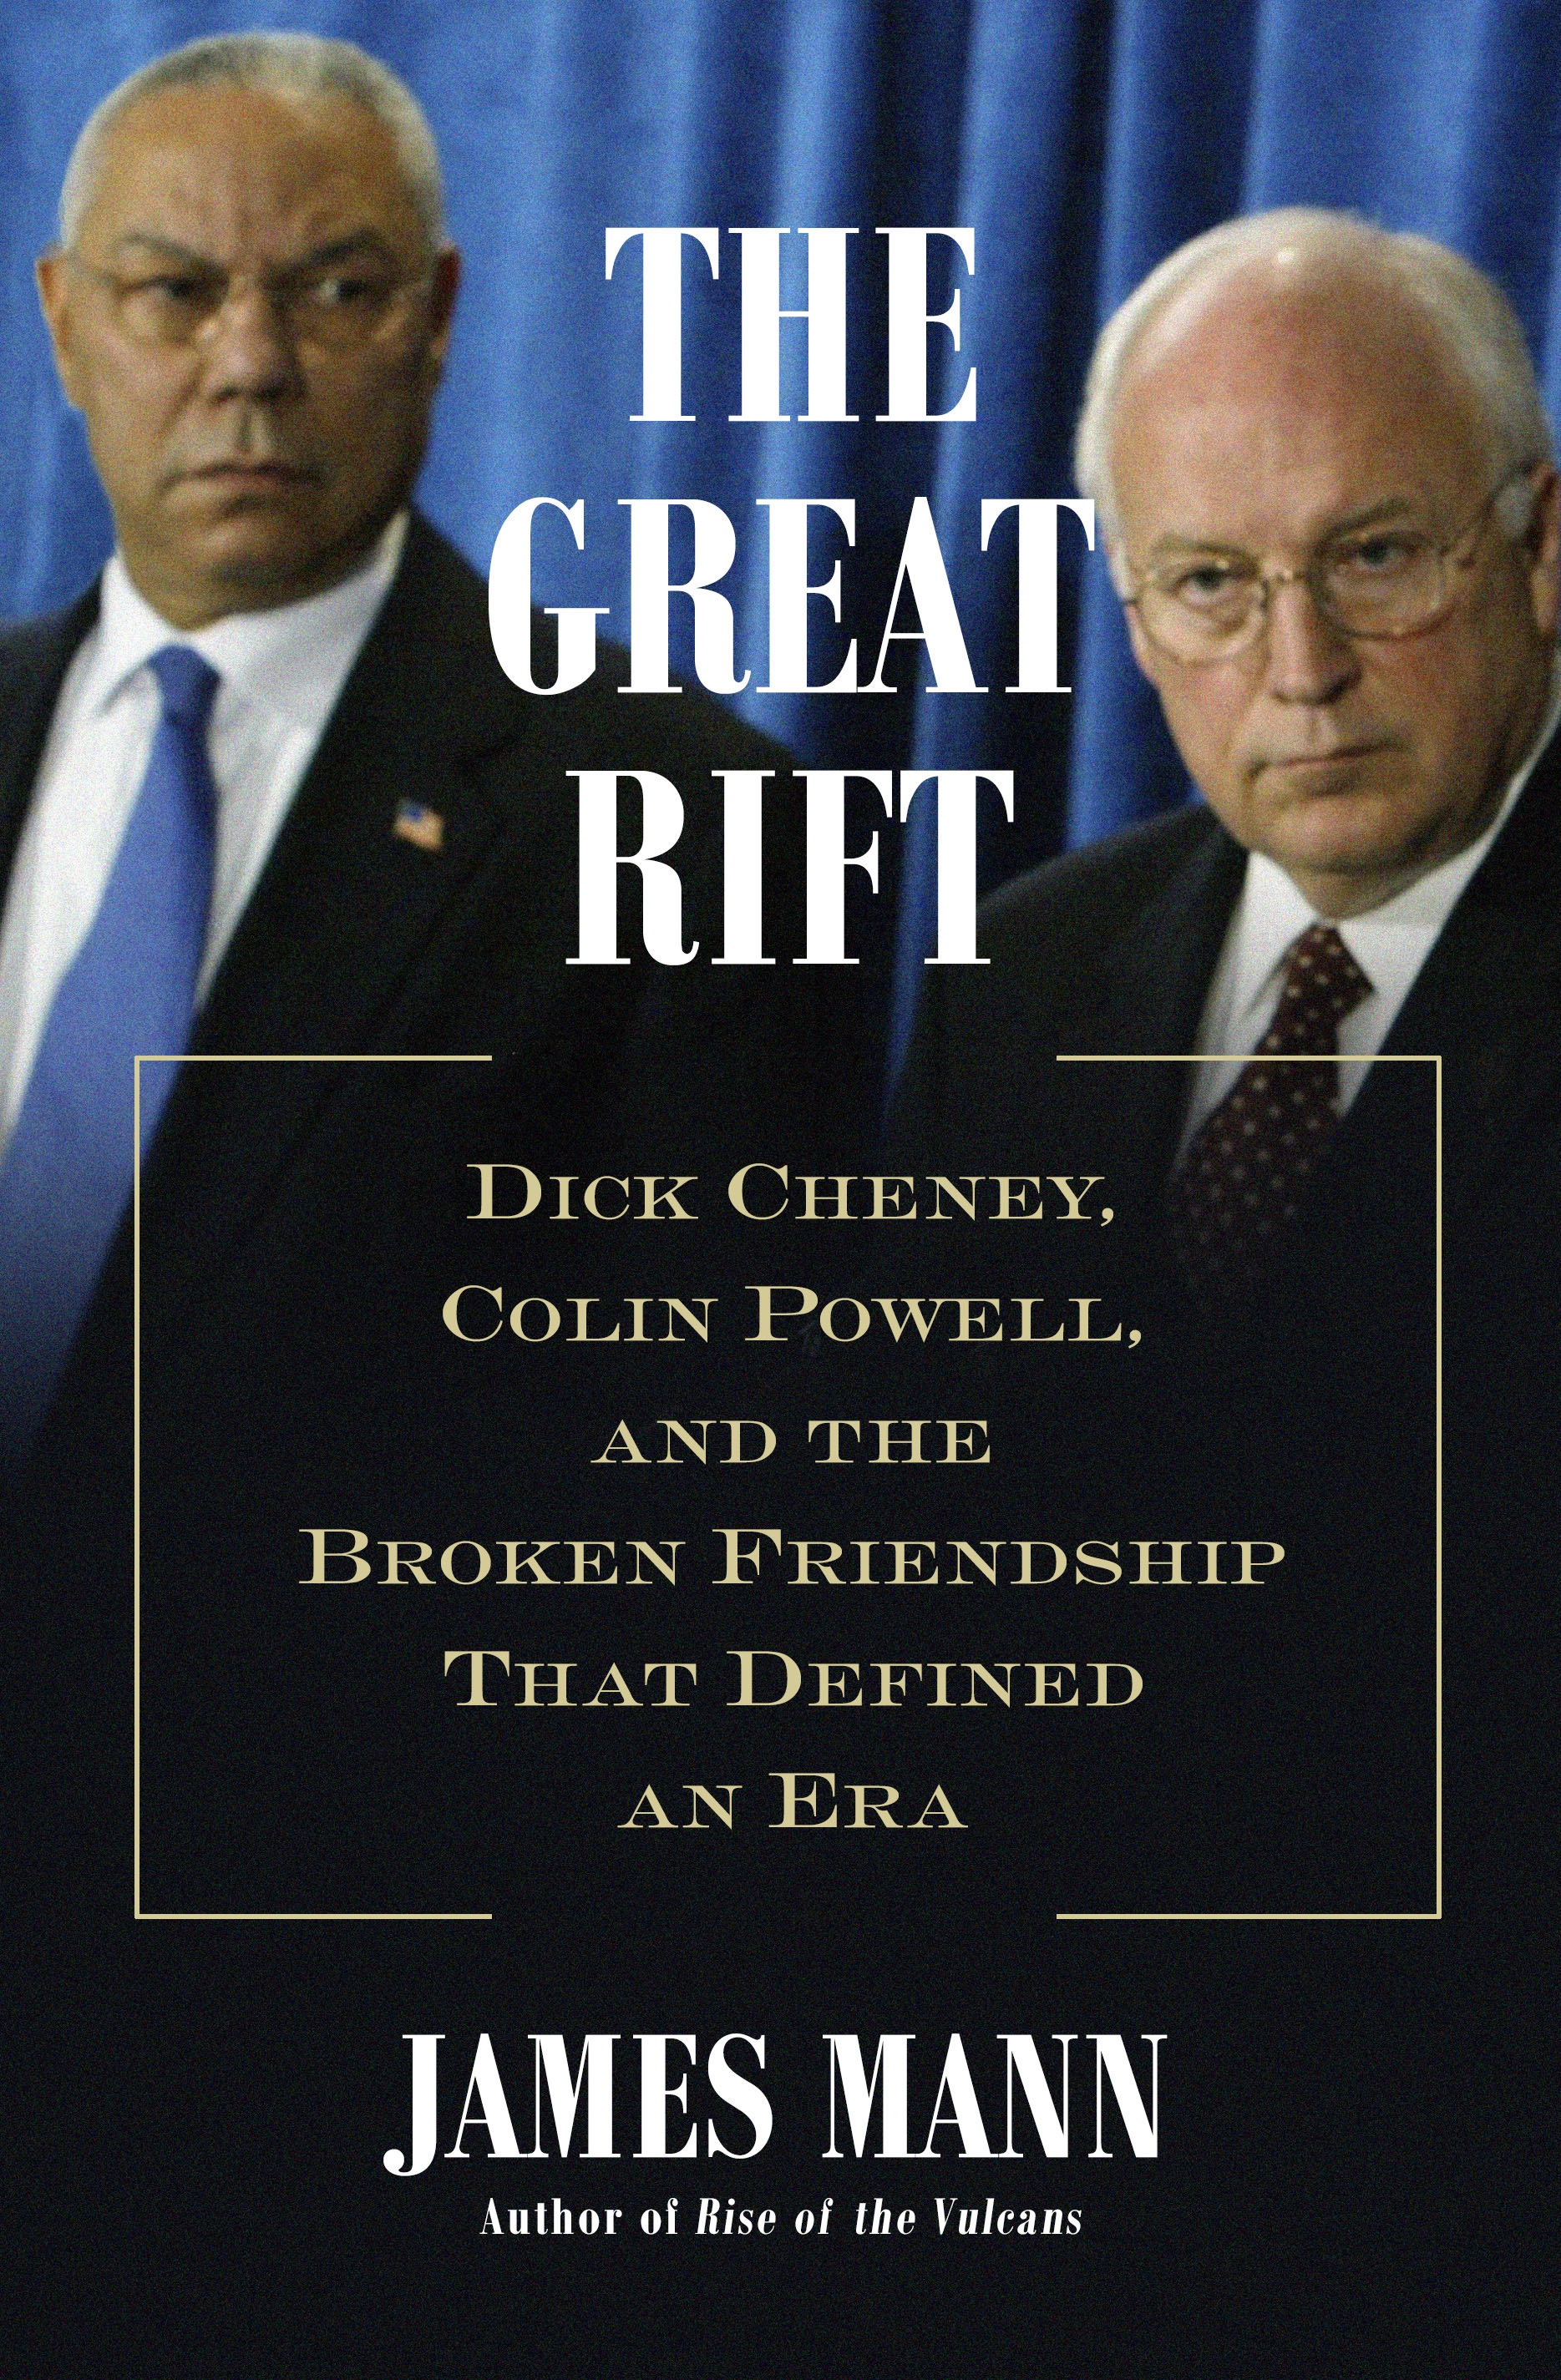 The great rift Dick Cheney, Colin Powell, and the broken friendship that defined an era cover image